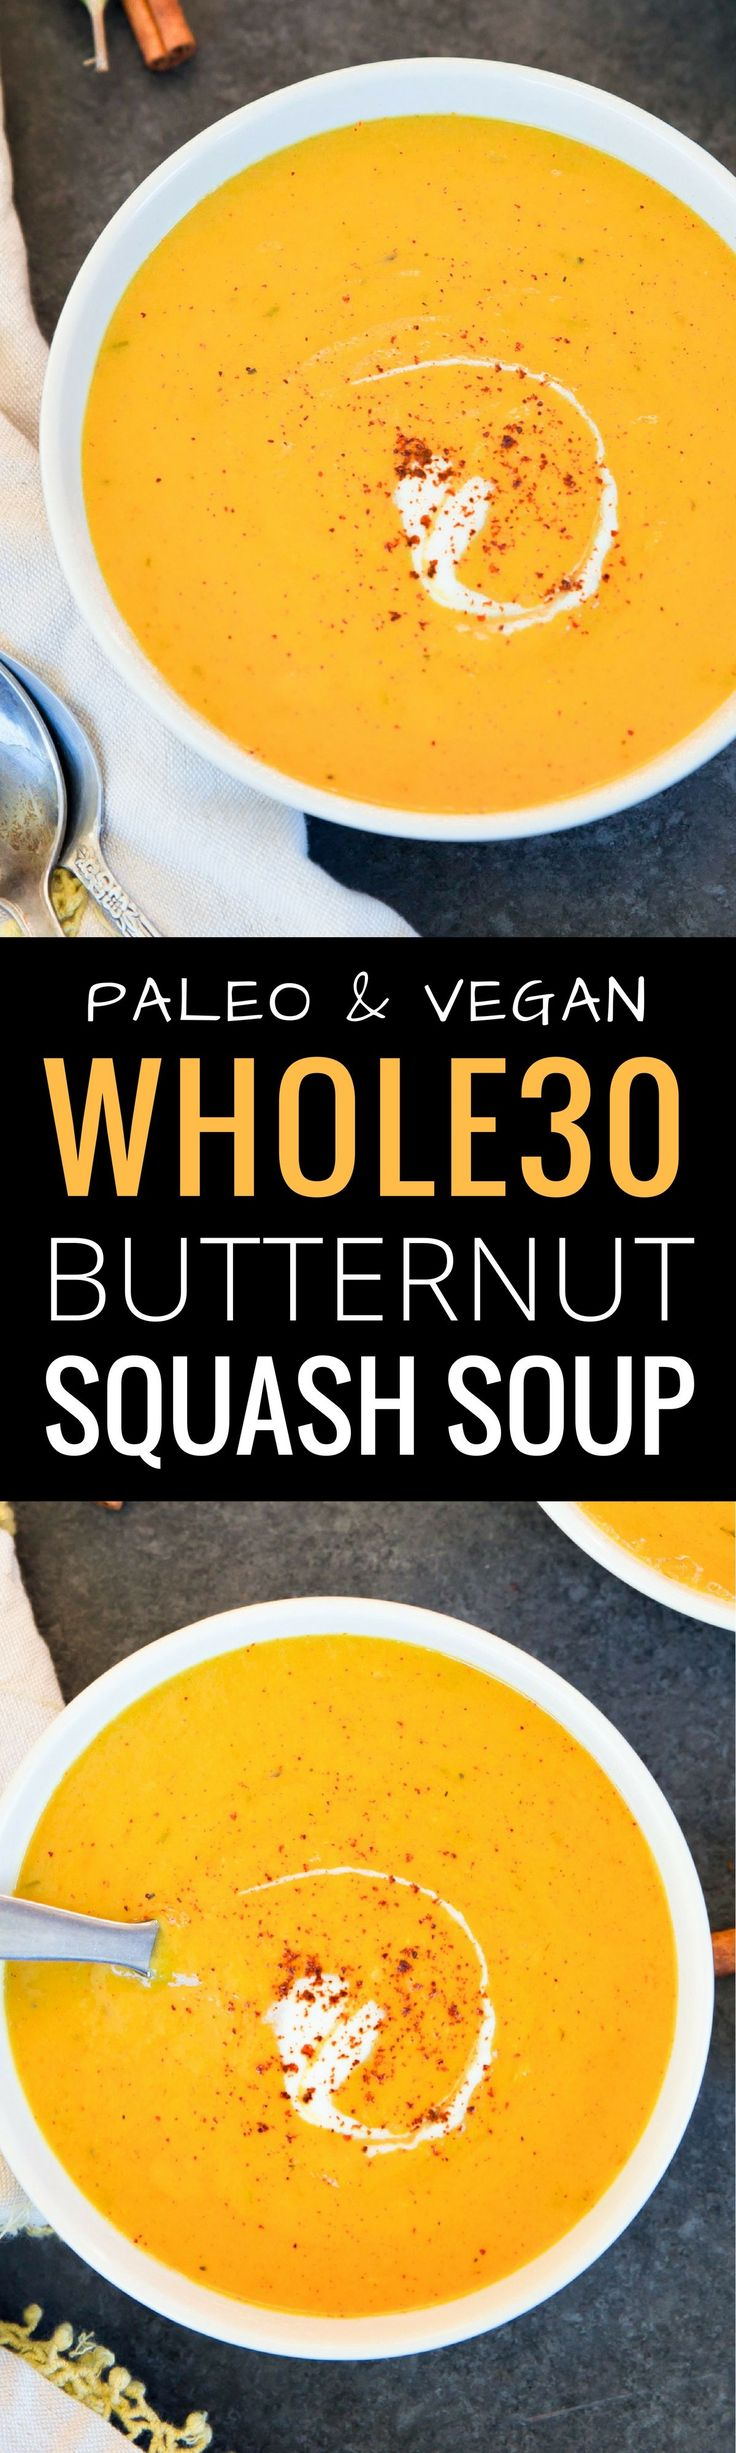 The best Vegan Butternut Squash Soup recipe. An ea…